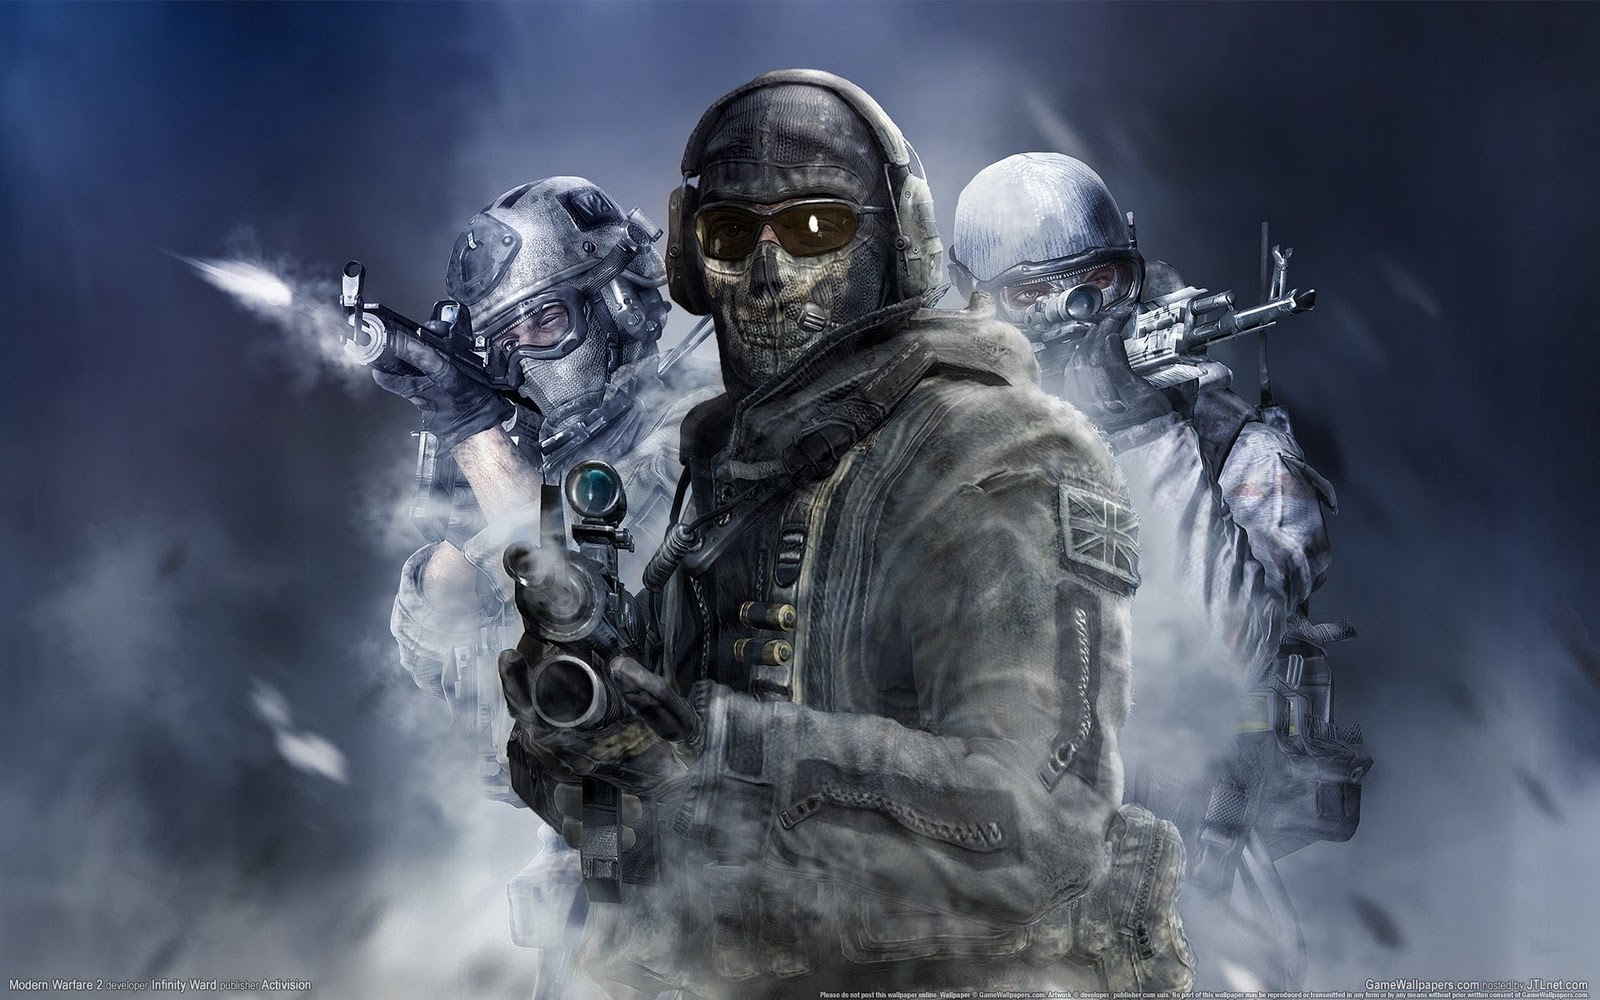 Iconic characters like GHOST truly make Call of Duty what it is today